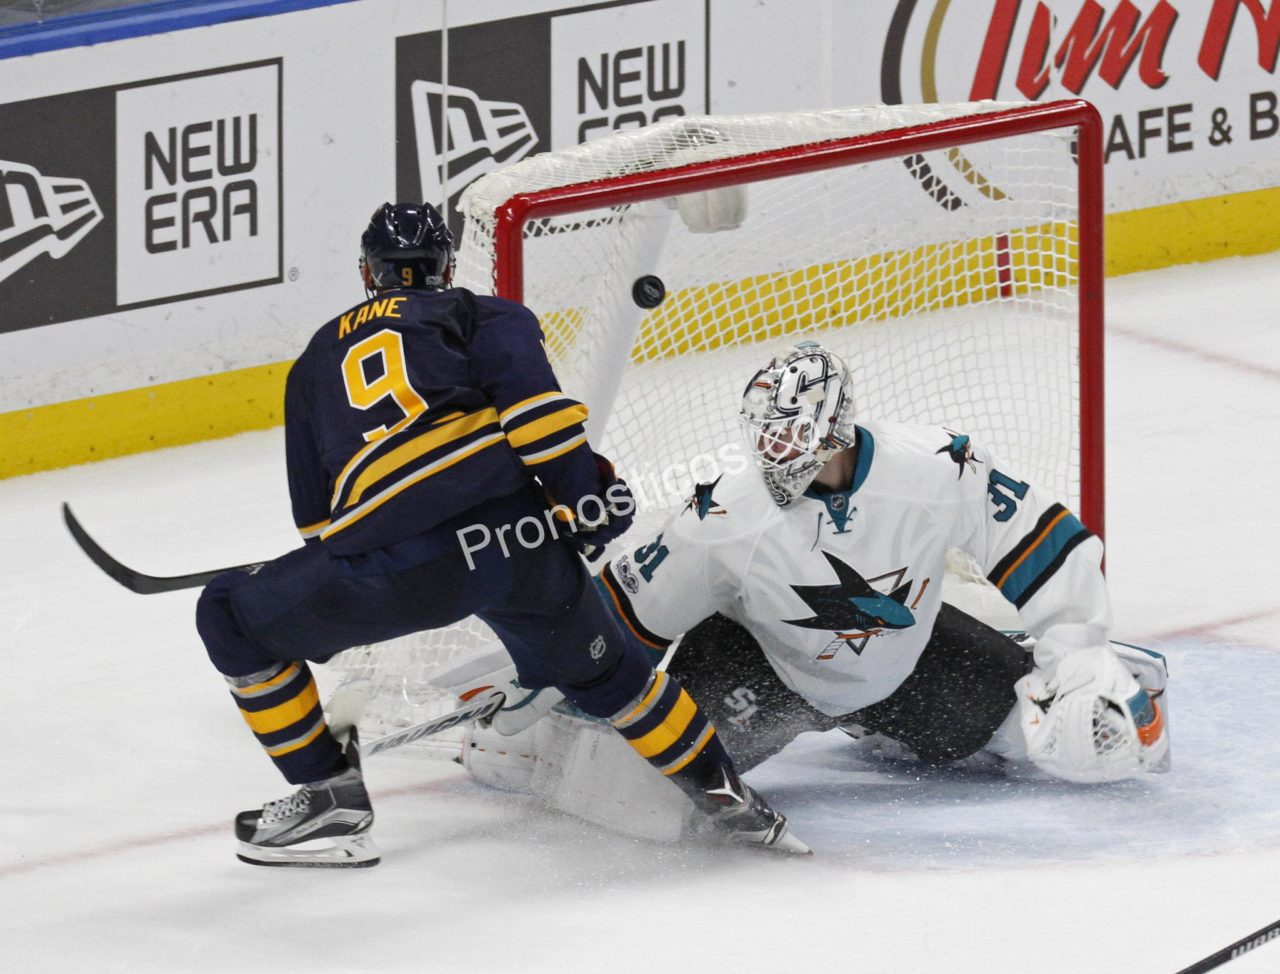 San Jose Sharks	 vs 	Buffalo Sabres Prediccion